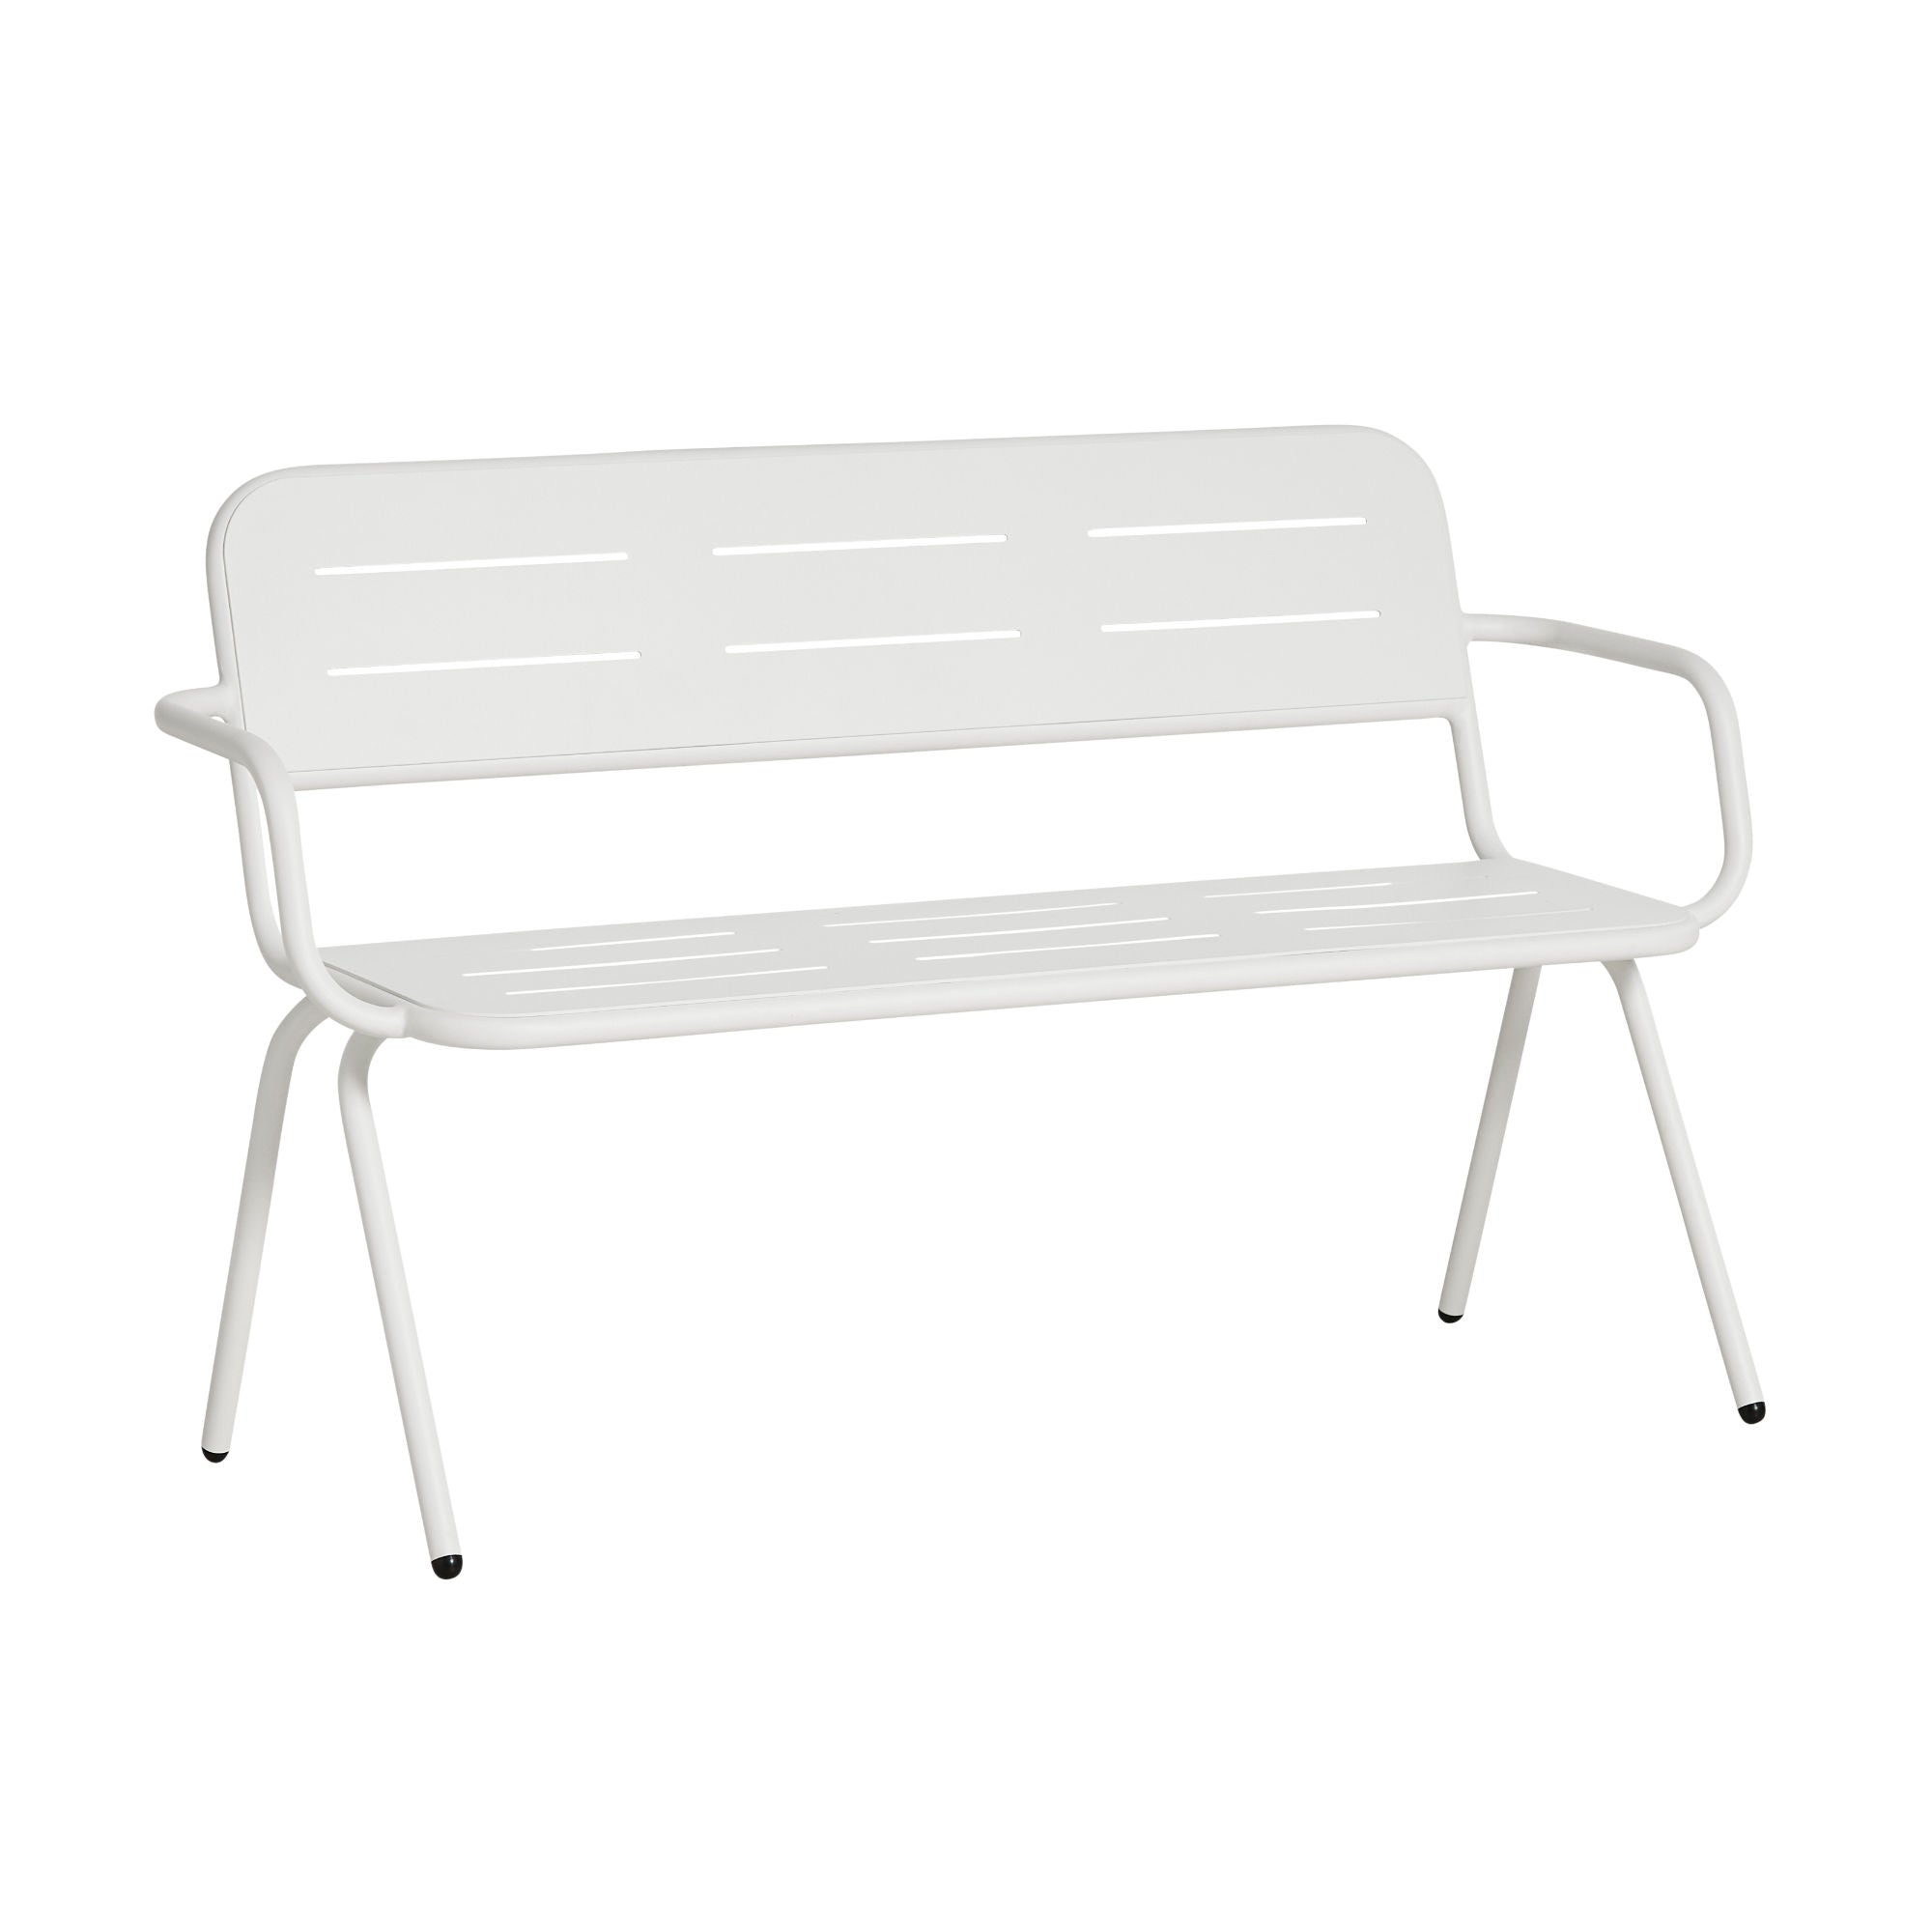 Woud Ray Bench w. Armrest , White